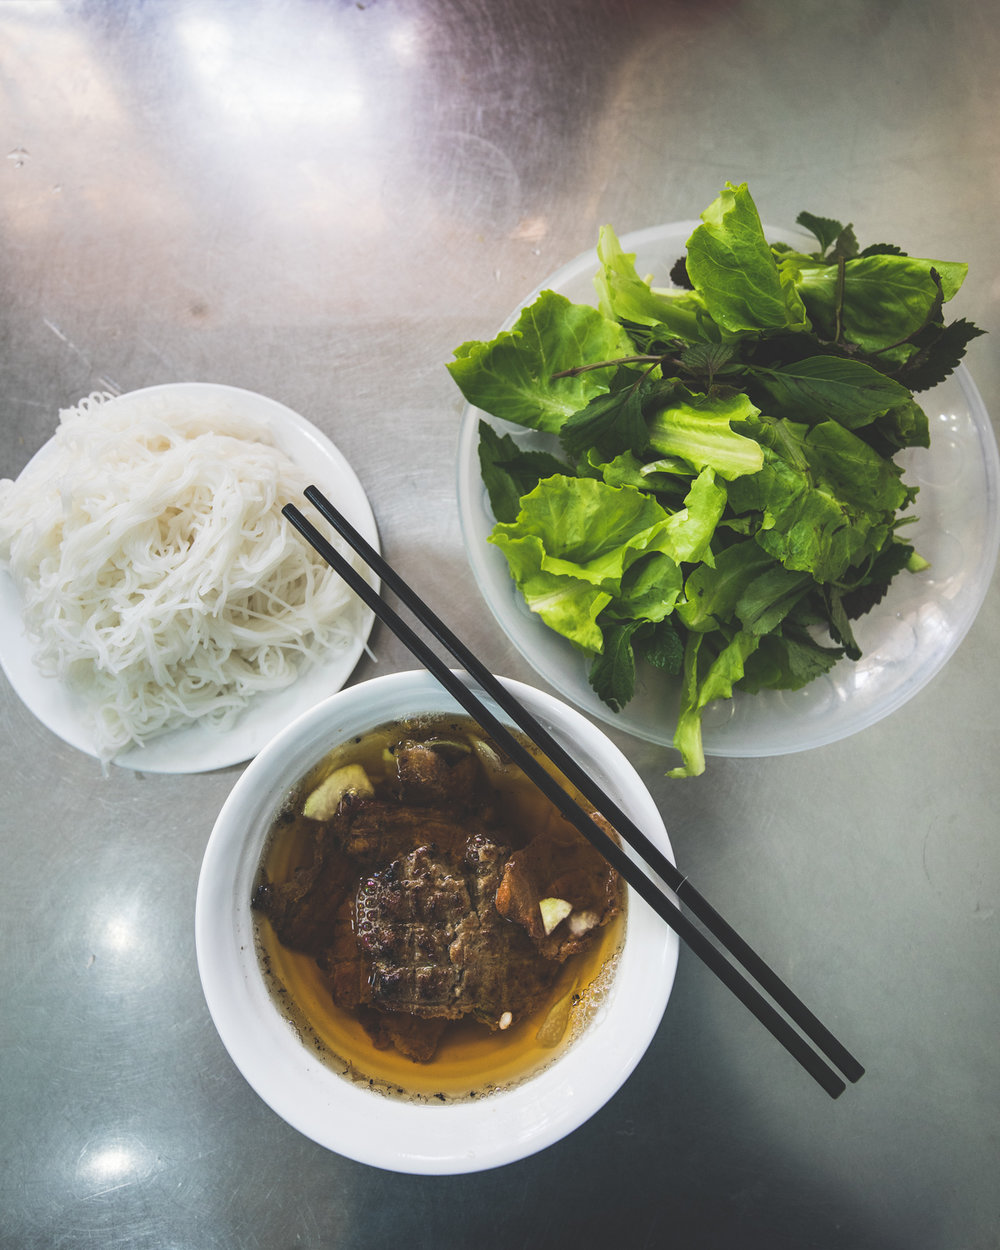 Best street food in Hanoi - Bun Cha Huong Lien